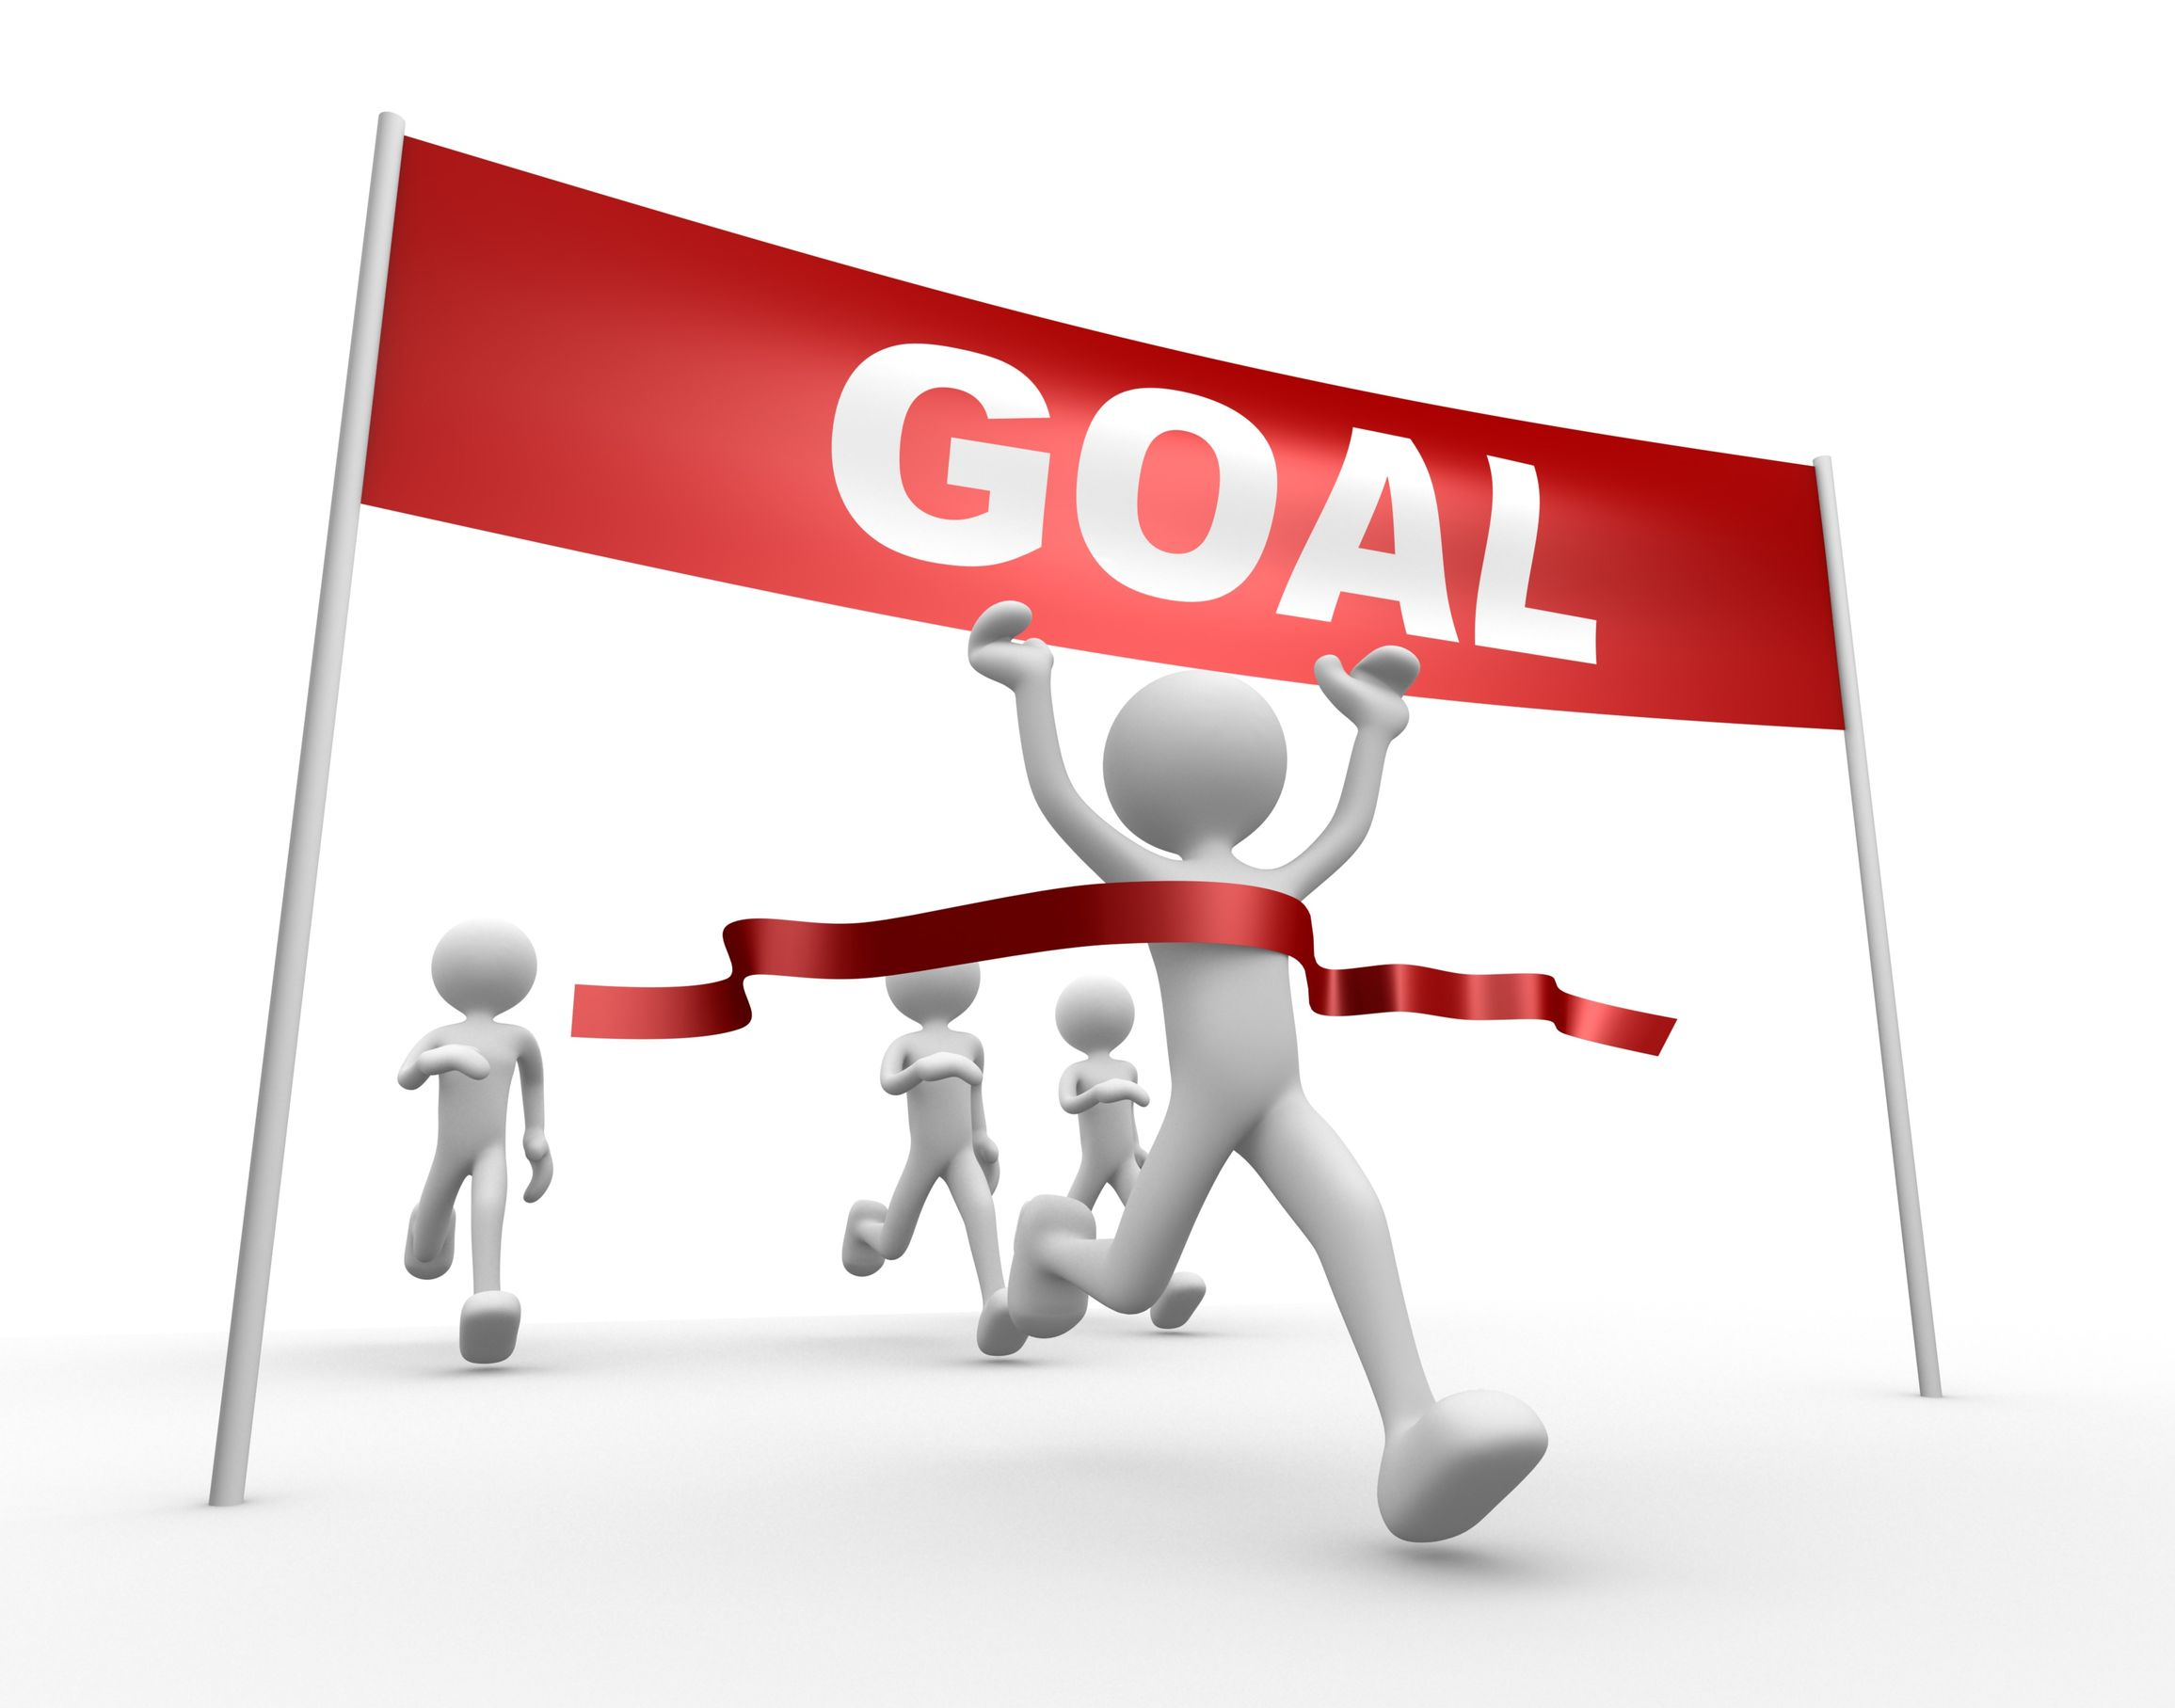 Goals clipart red. Make your dreams a